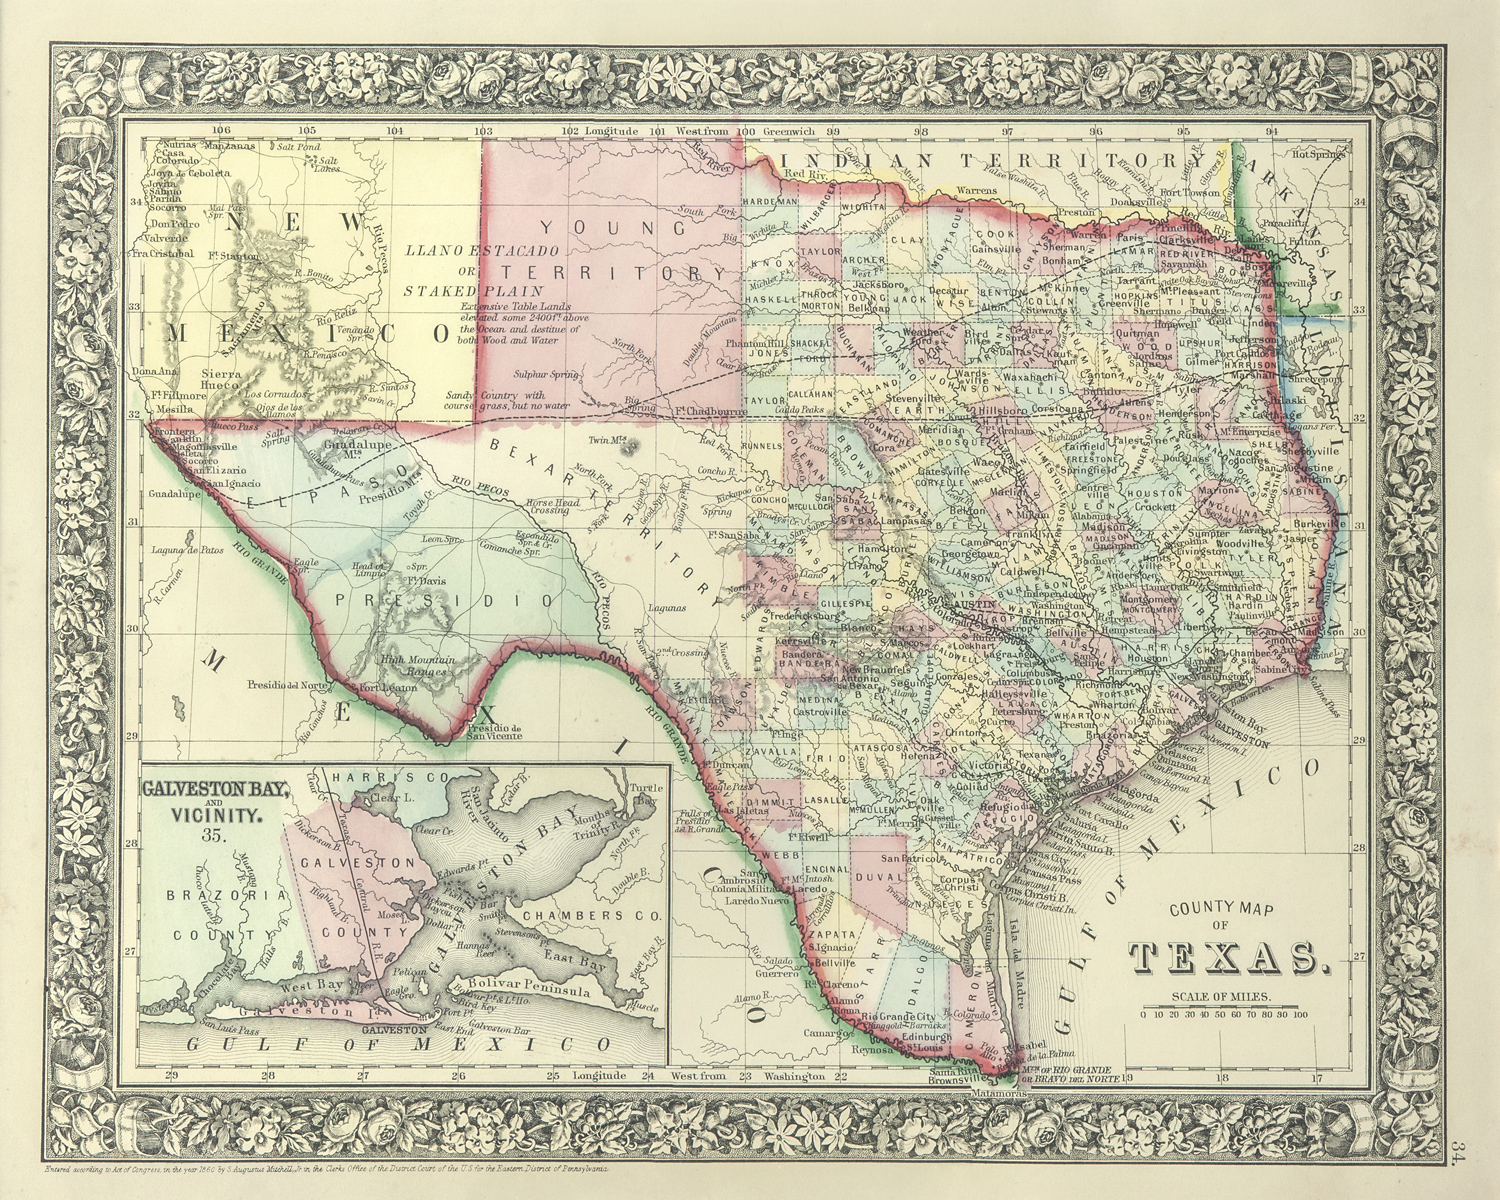 The Antiquarium - Antique Print & Map Gallery - Texas Maps - Old Texas Maps For Sale